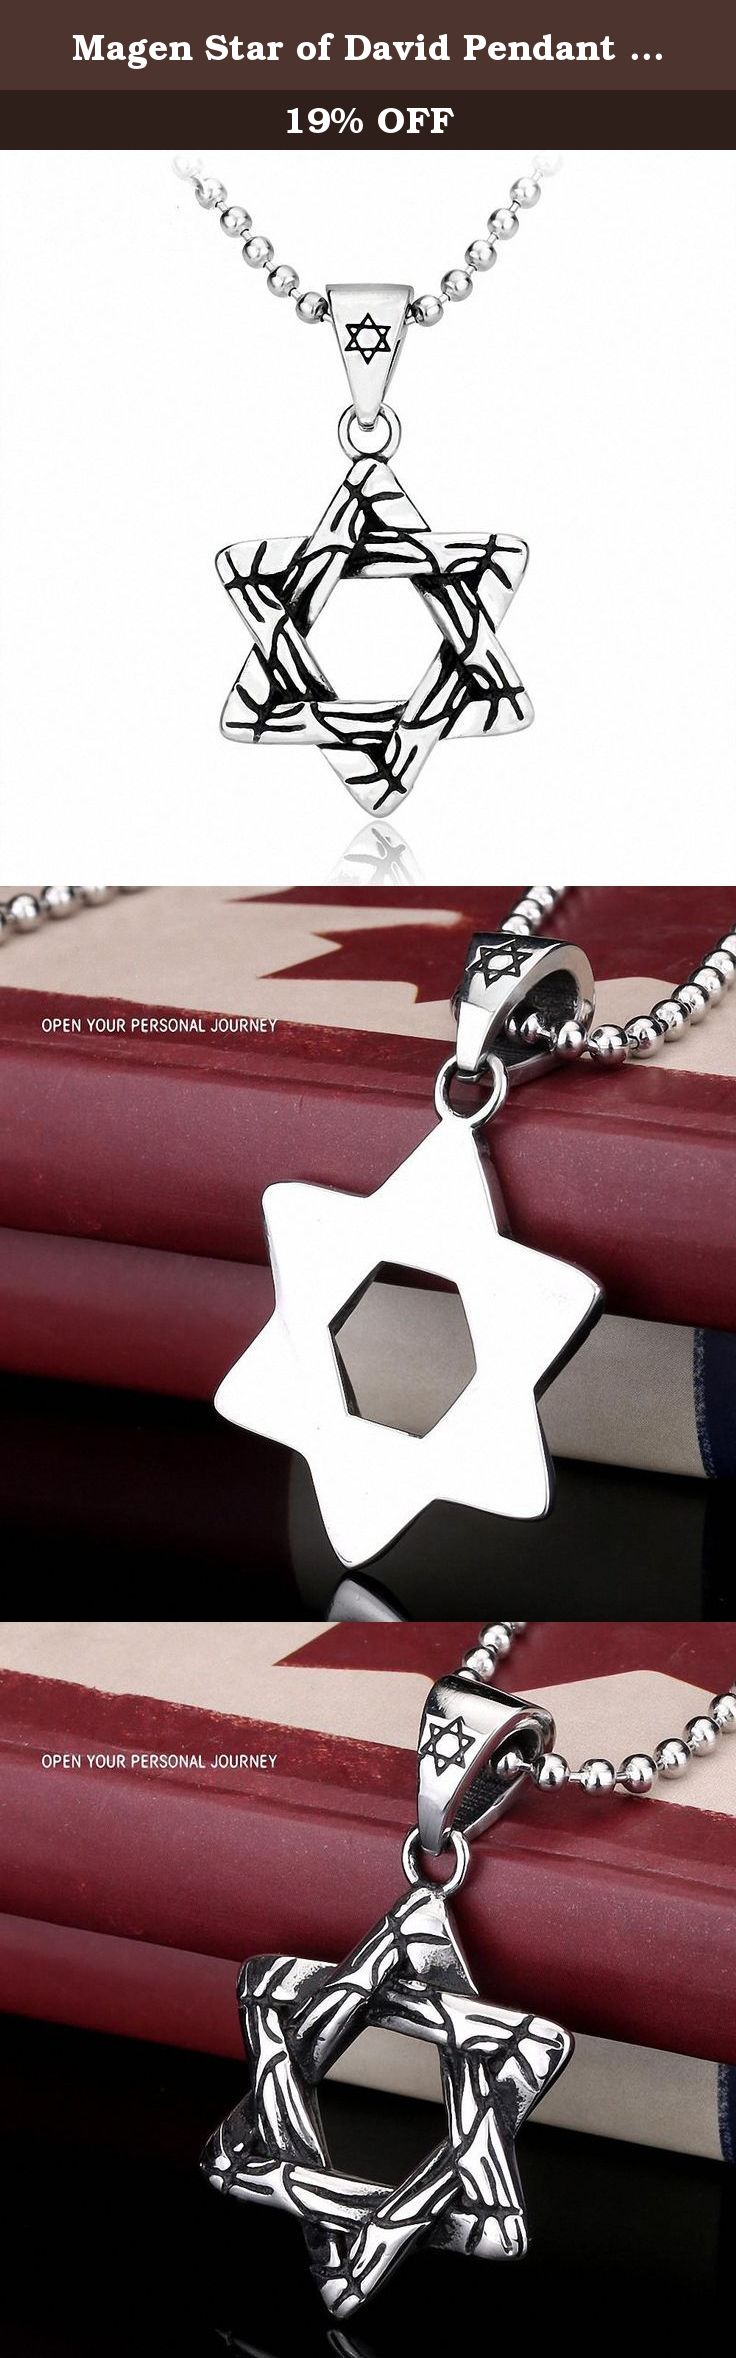 Magen Star of David Pendant Necklace Women Men Chain Stainless Steel Necklace. Fashion Jewelry.